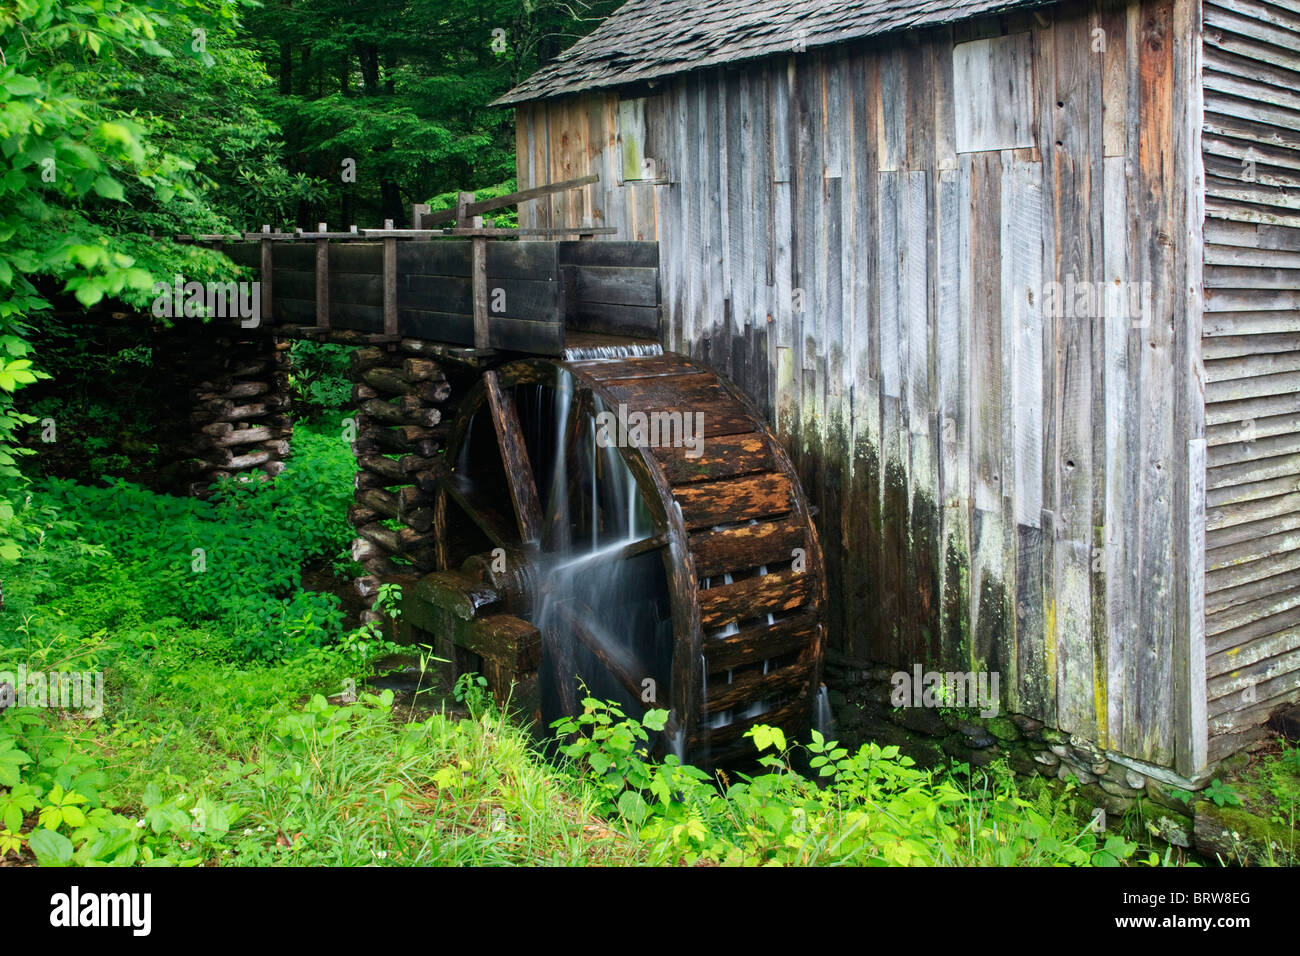 The John P Cable Grist Mills in the Great Smoky Mountains National Park USA - Stock Image